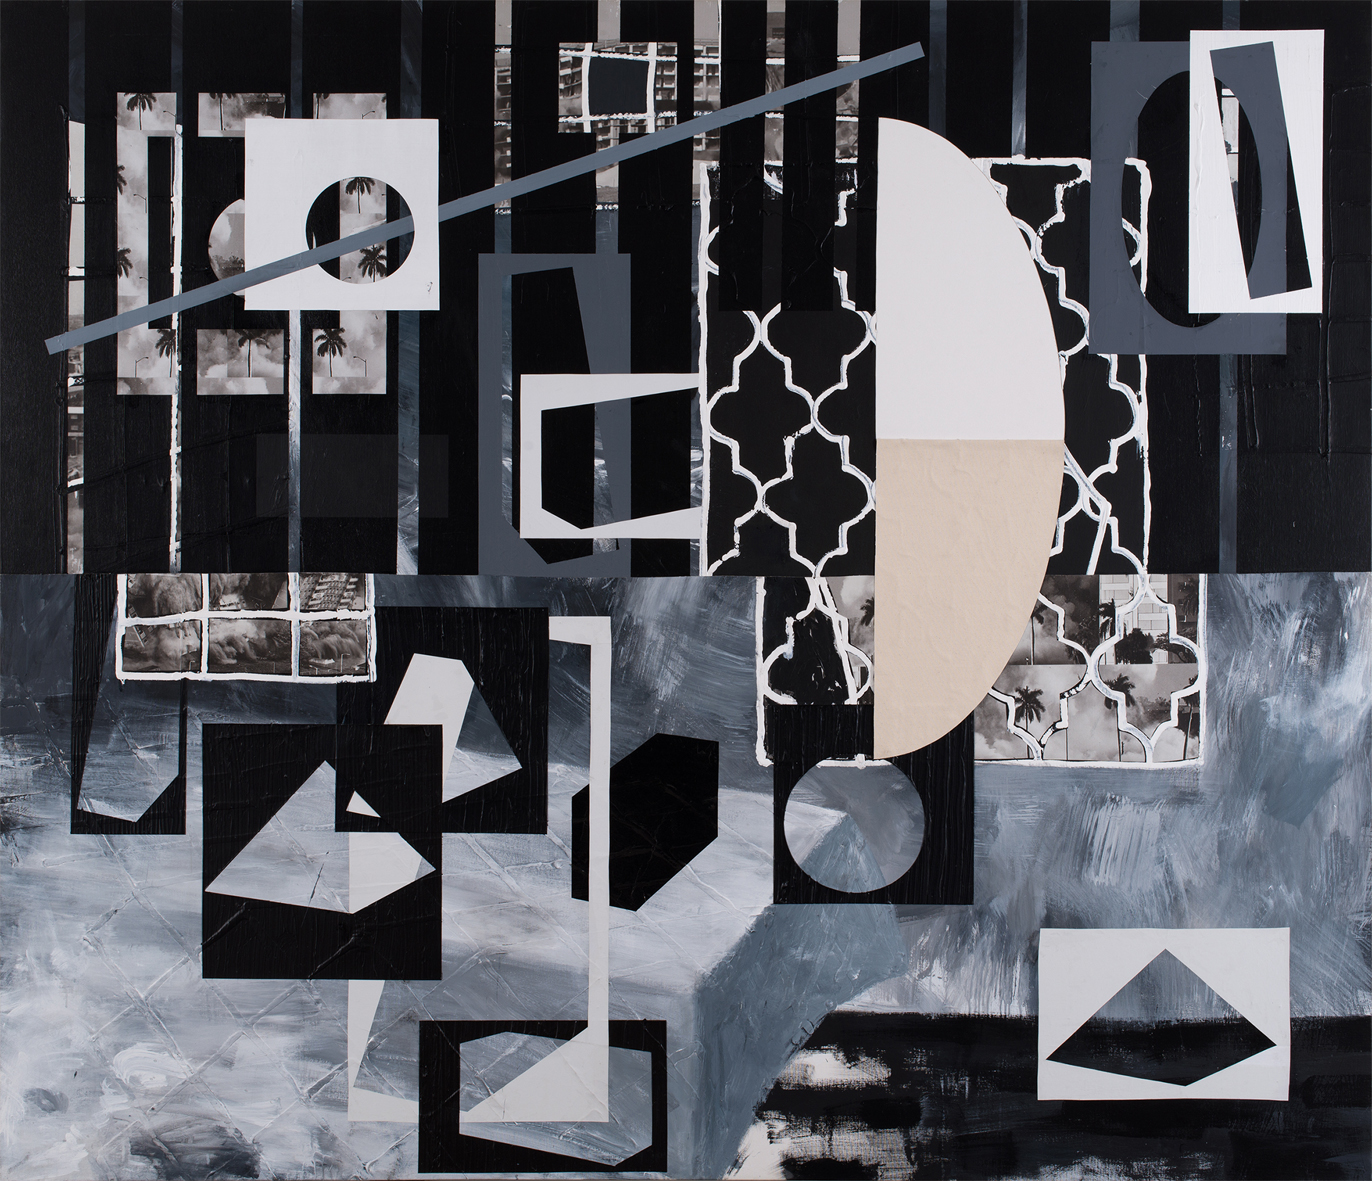 Guy Avital, Saf, 2015, Acrylic and Collage on Canvas, 200x231cm